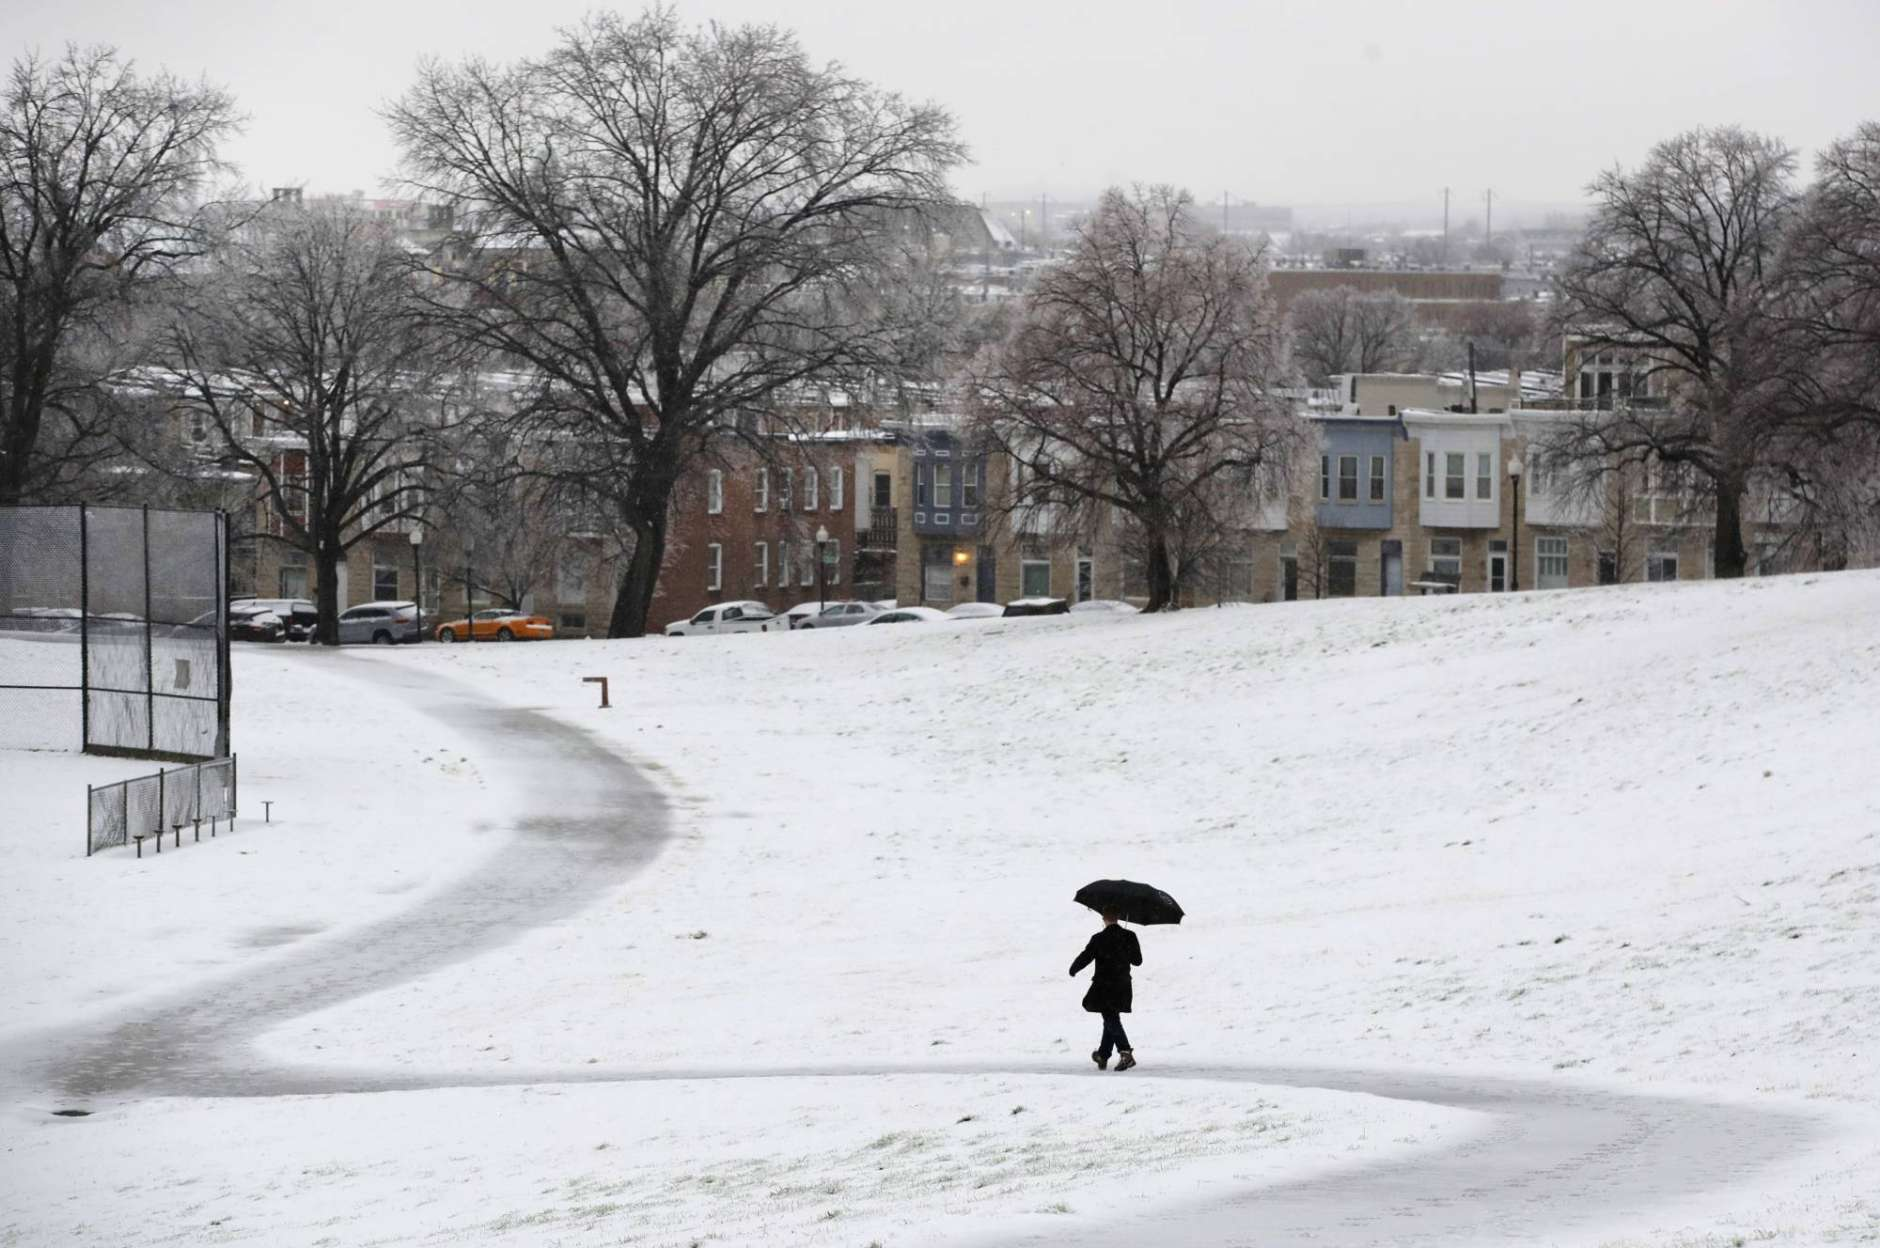 A man walks through a park in Baltimore, Tuesday, March 14, 2017, as a winter storm moves through the region. (AP Photo/Patrick Semansky)